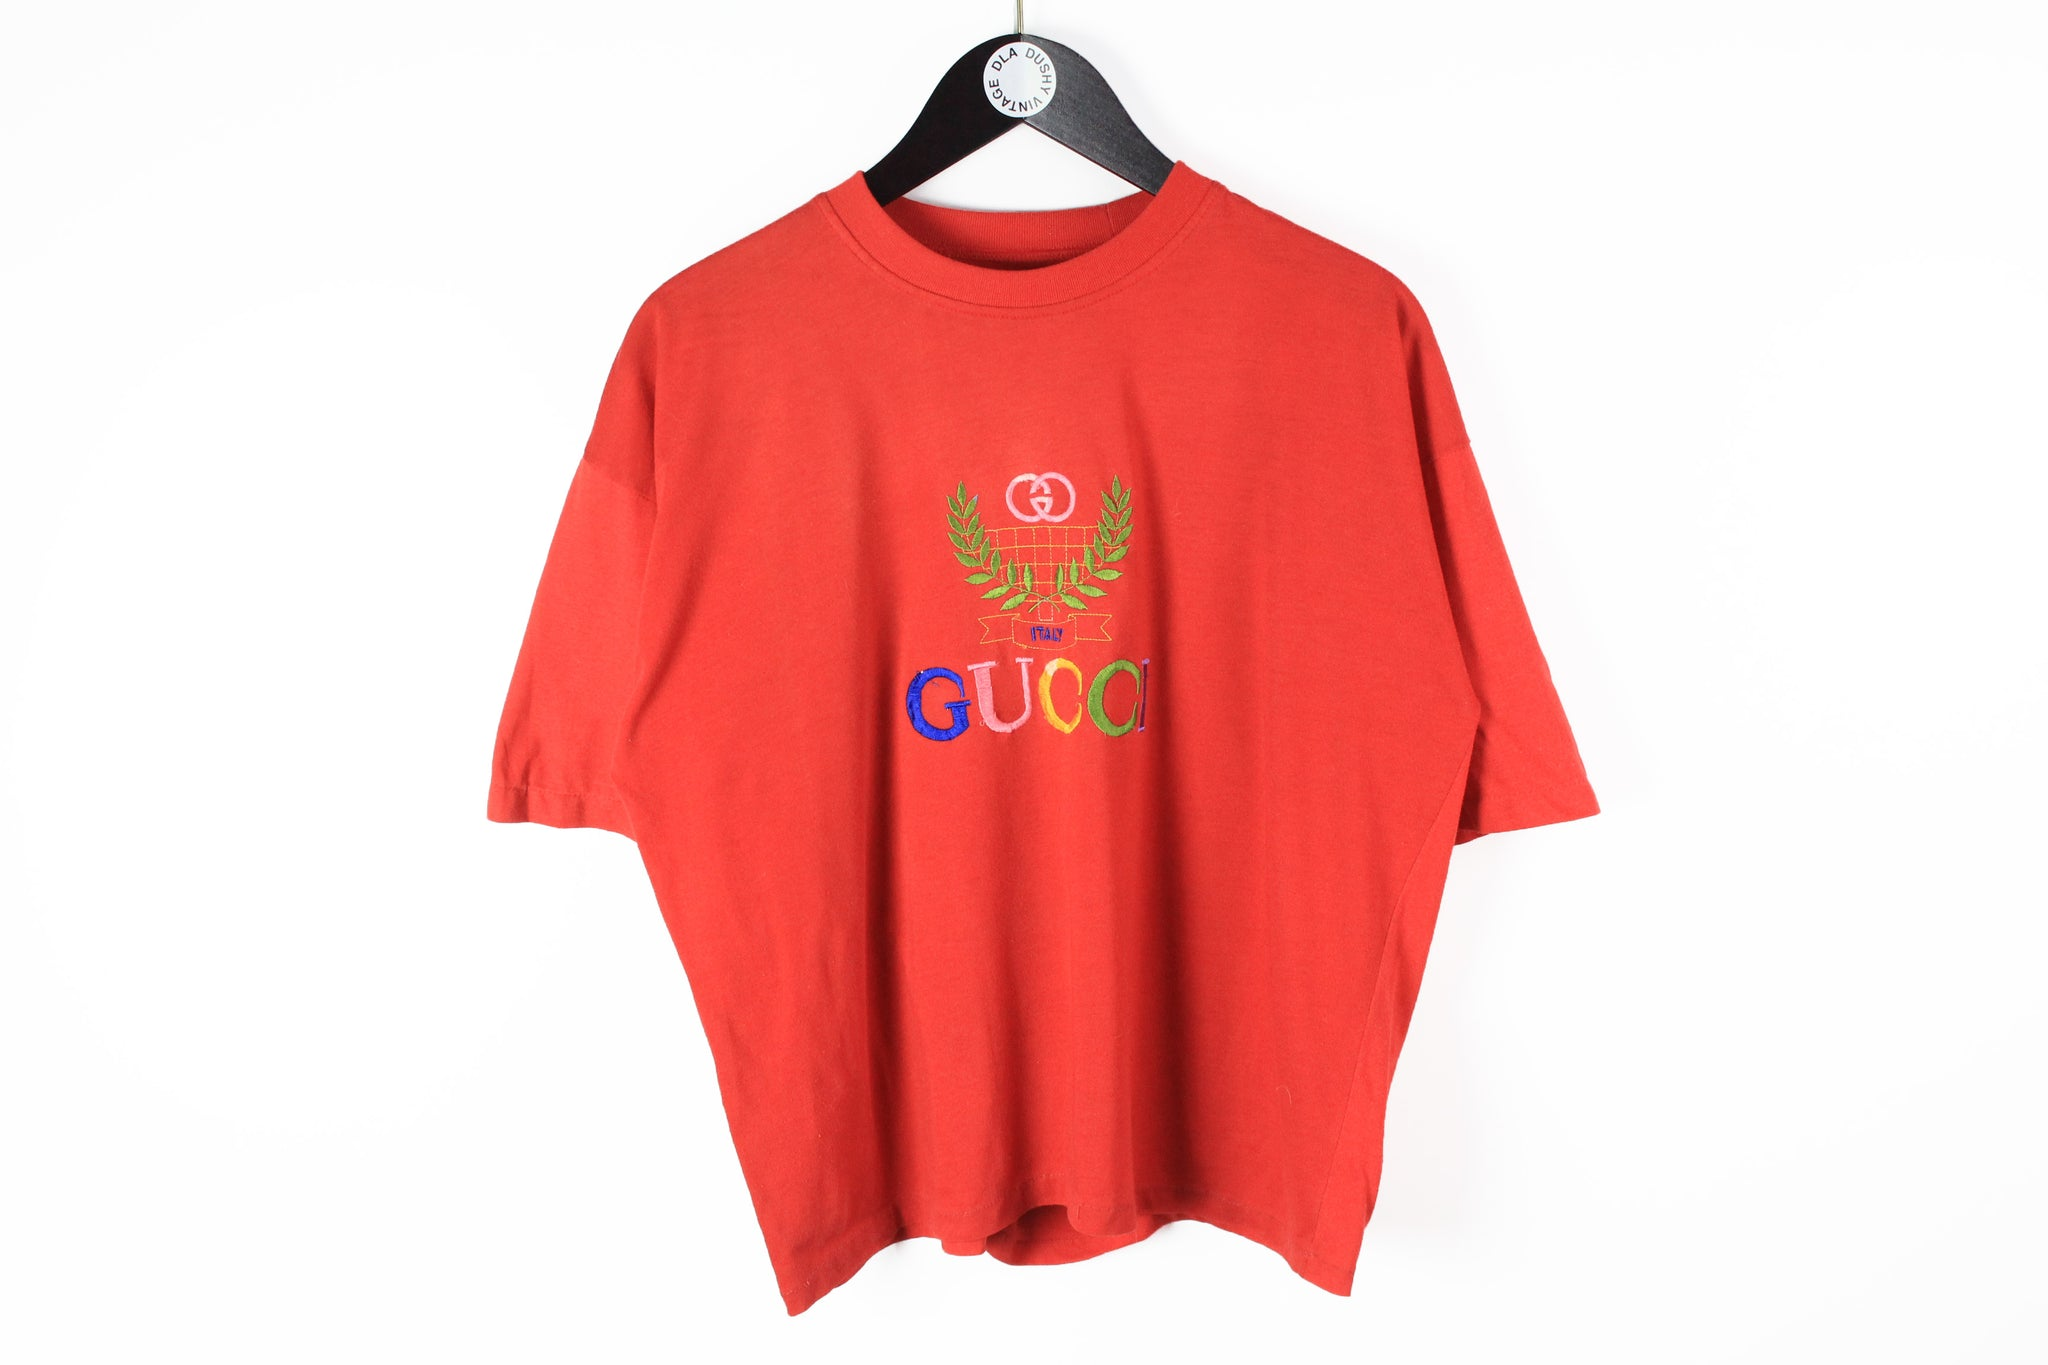 Vintage Gucci Bootleg T-Shirt Women's Medium red big multicolor logo 80s cotton tee